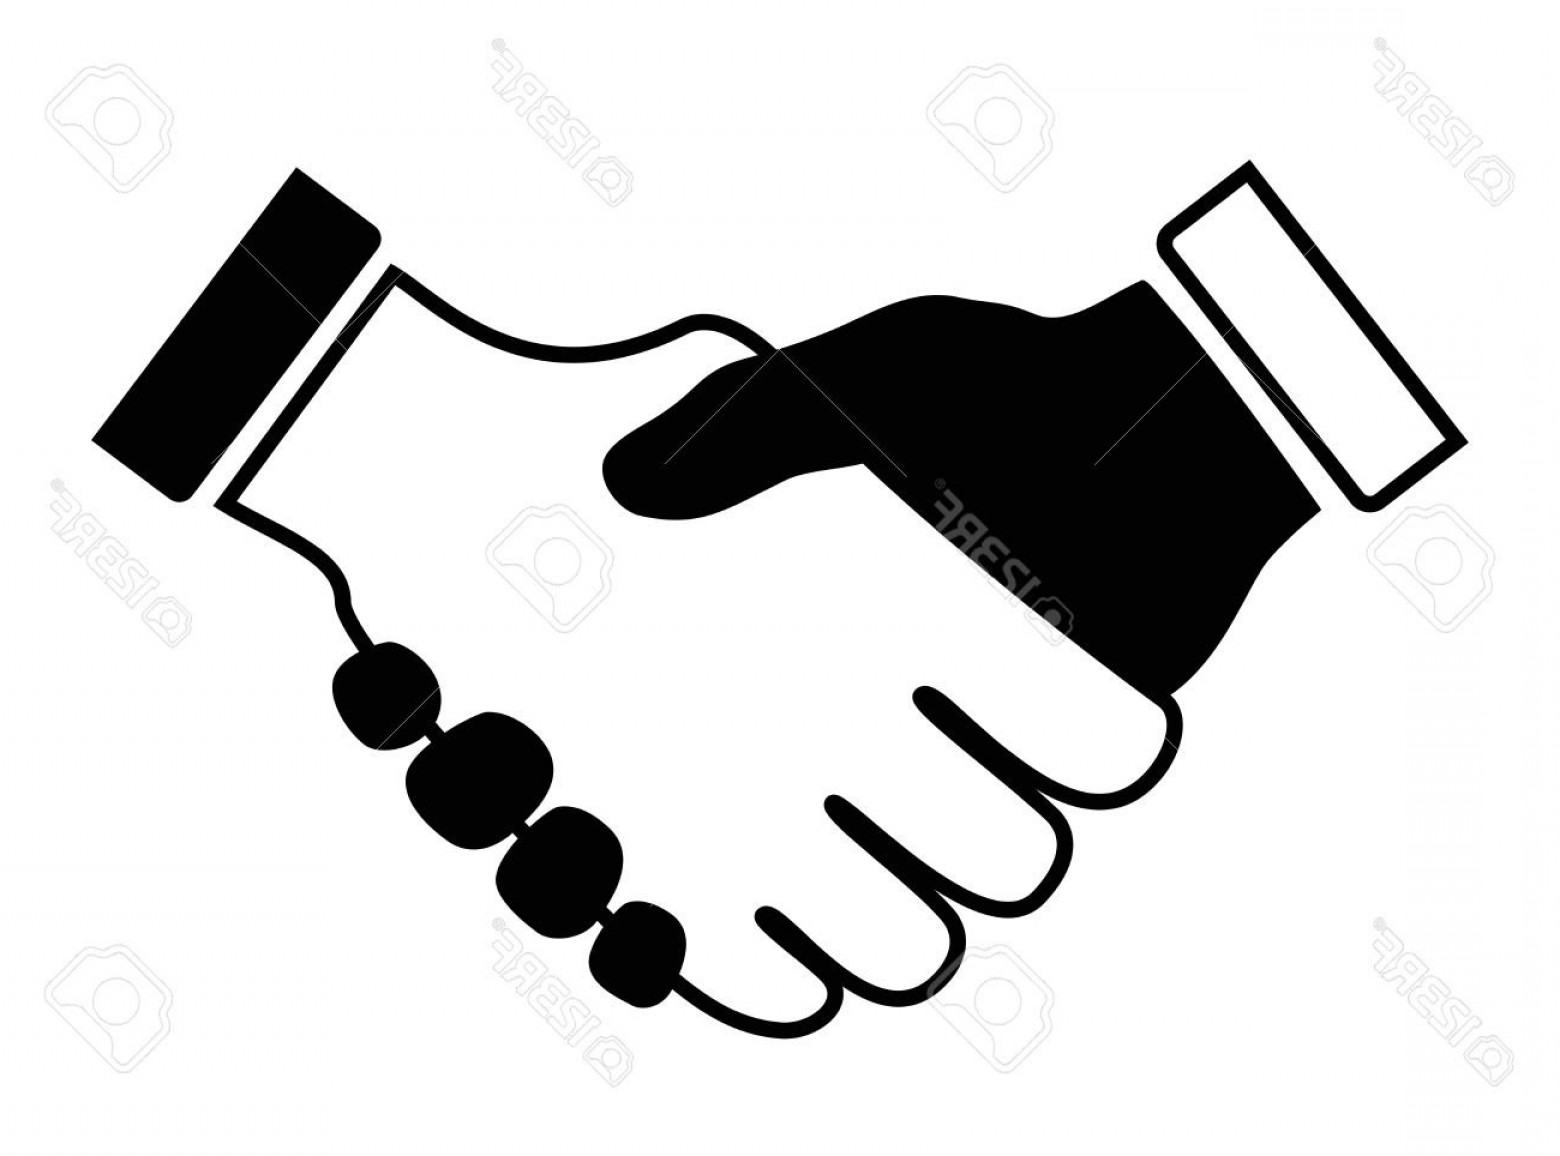 Handshake Clip Art Vector: Black And White Handshake Clipart